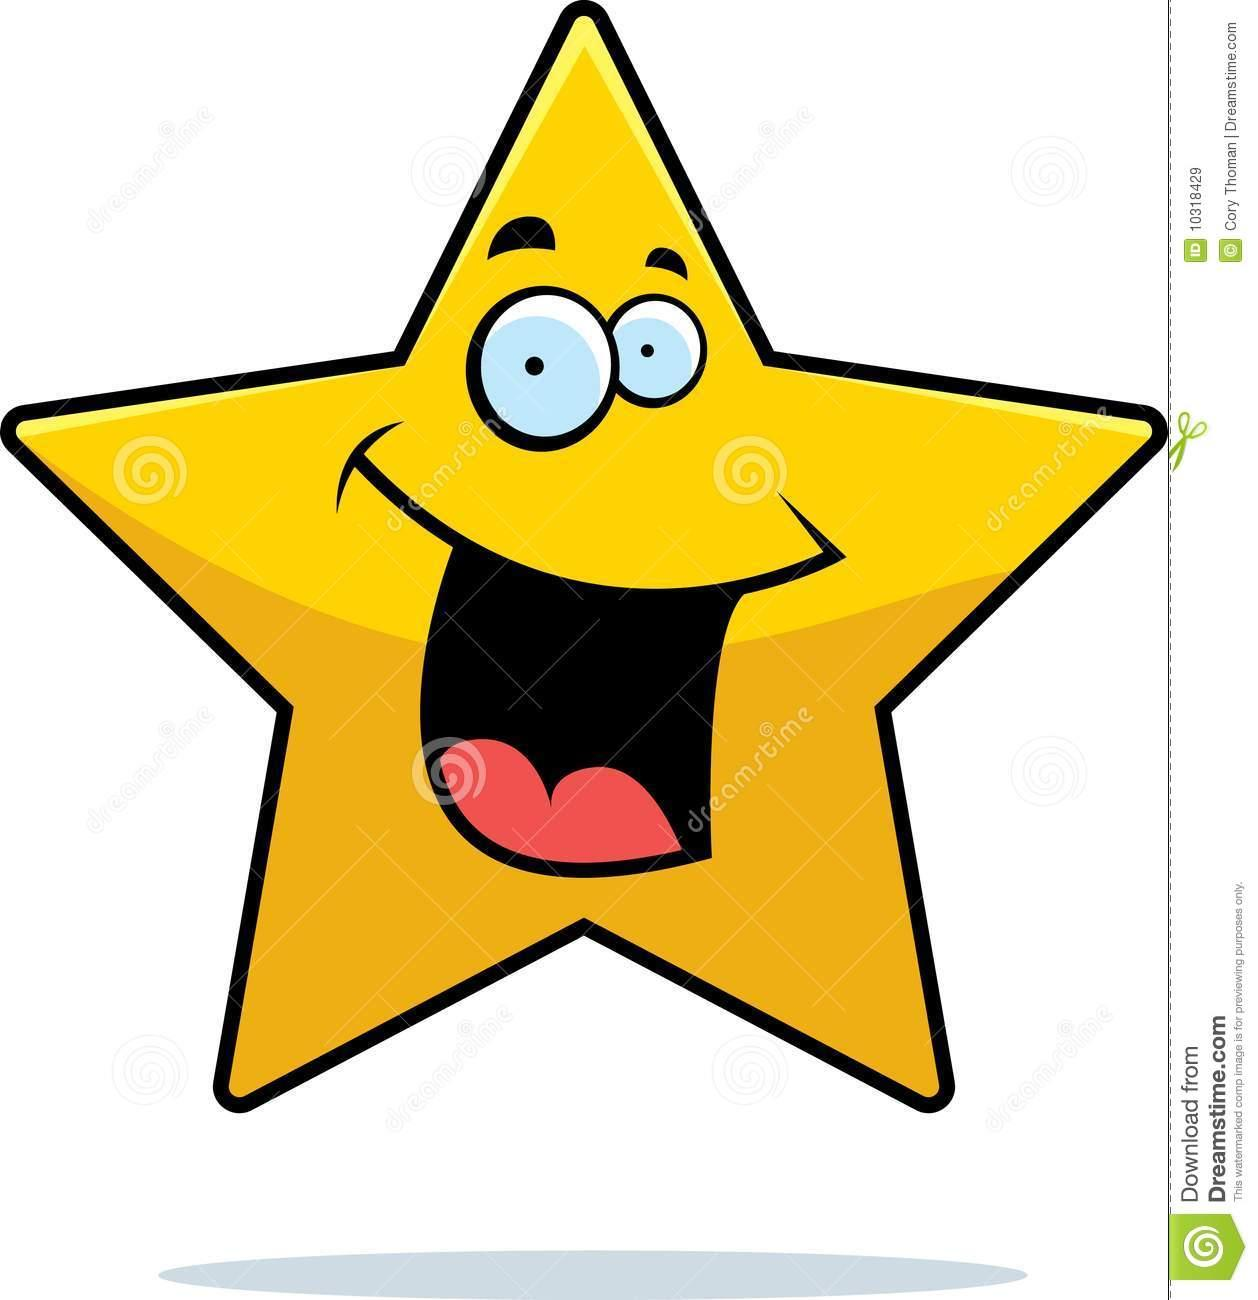 Star shapes clipart 1 » Clipart Station.